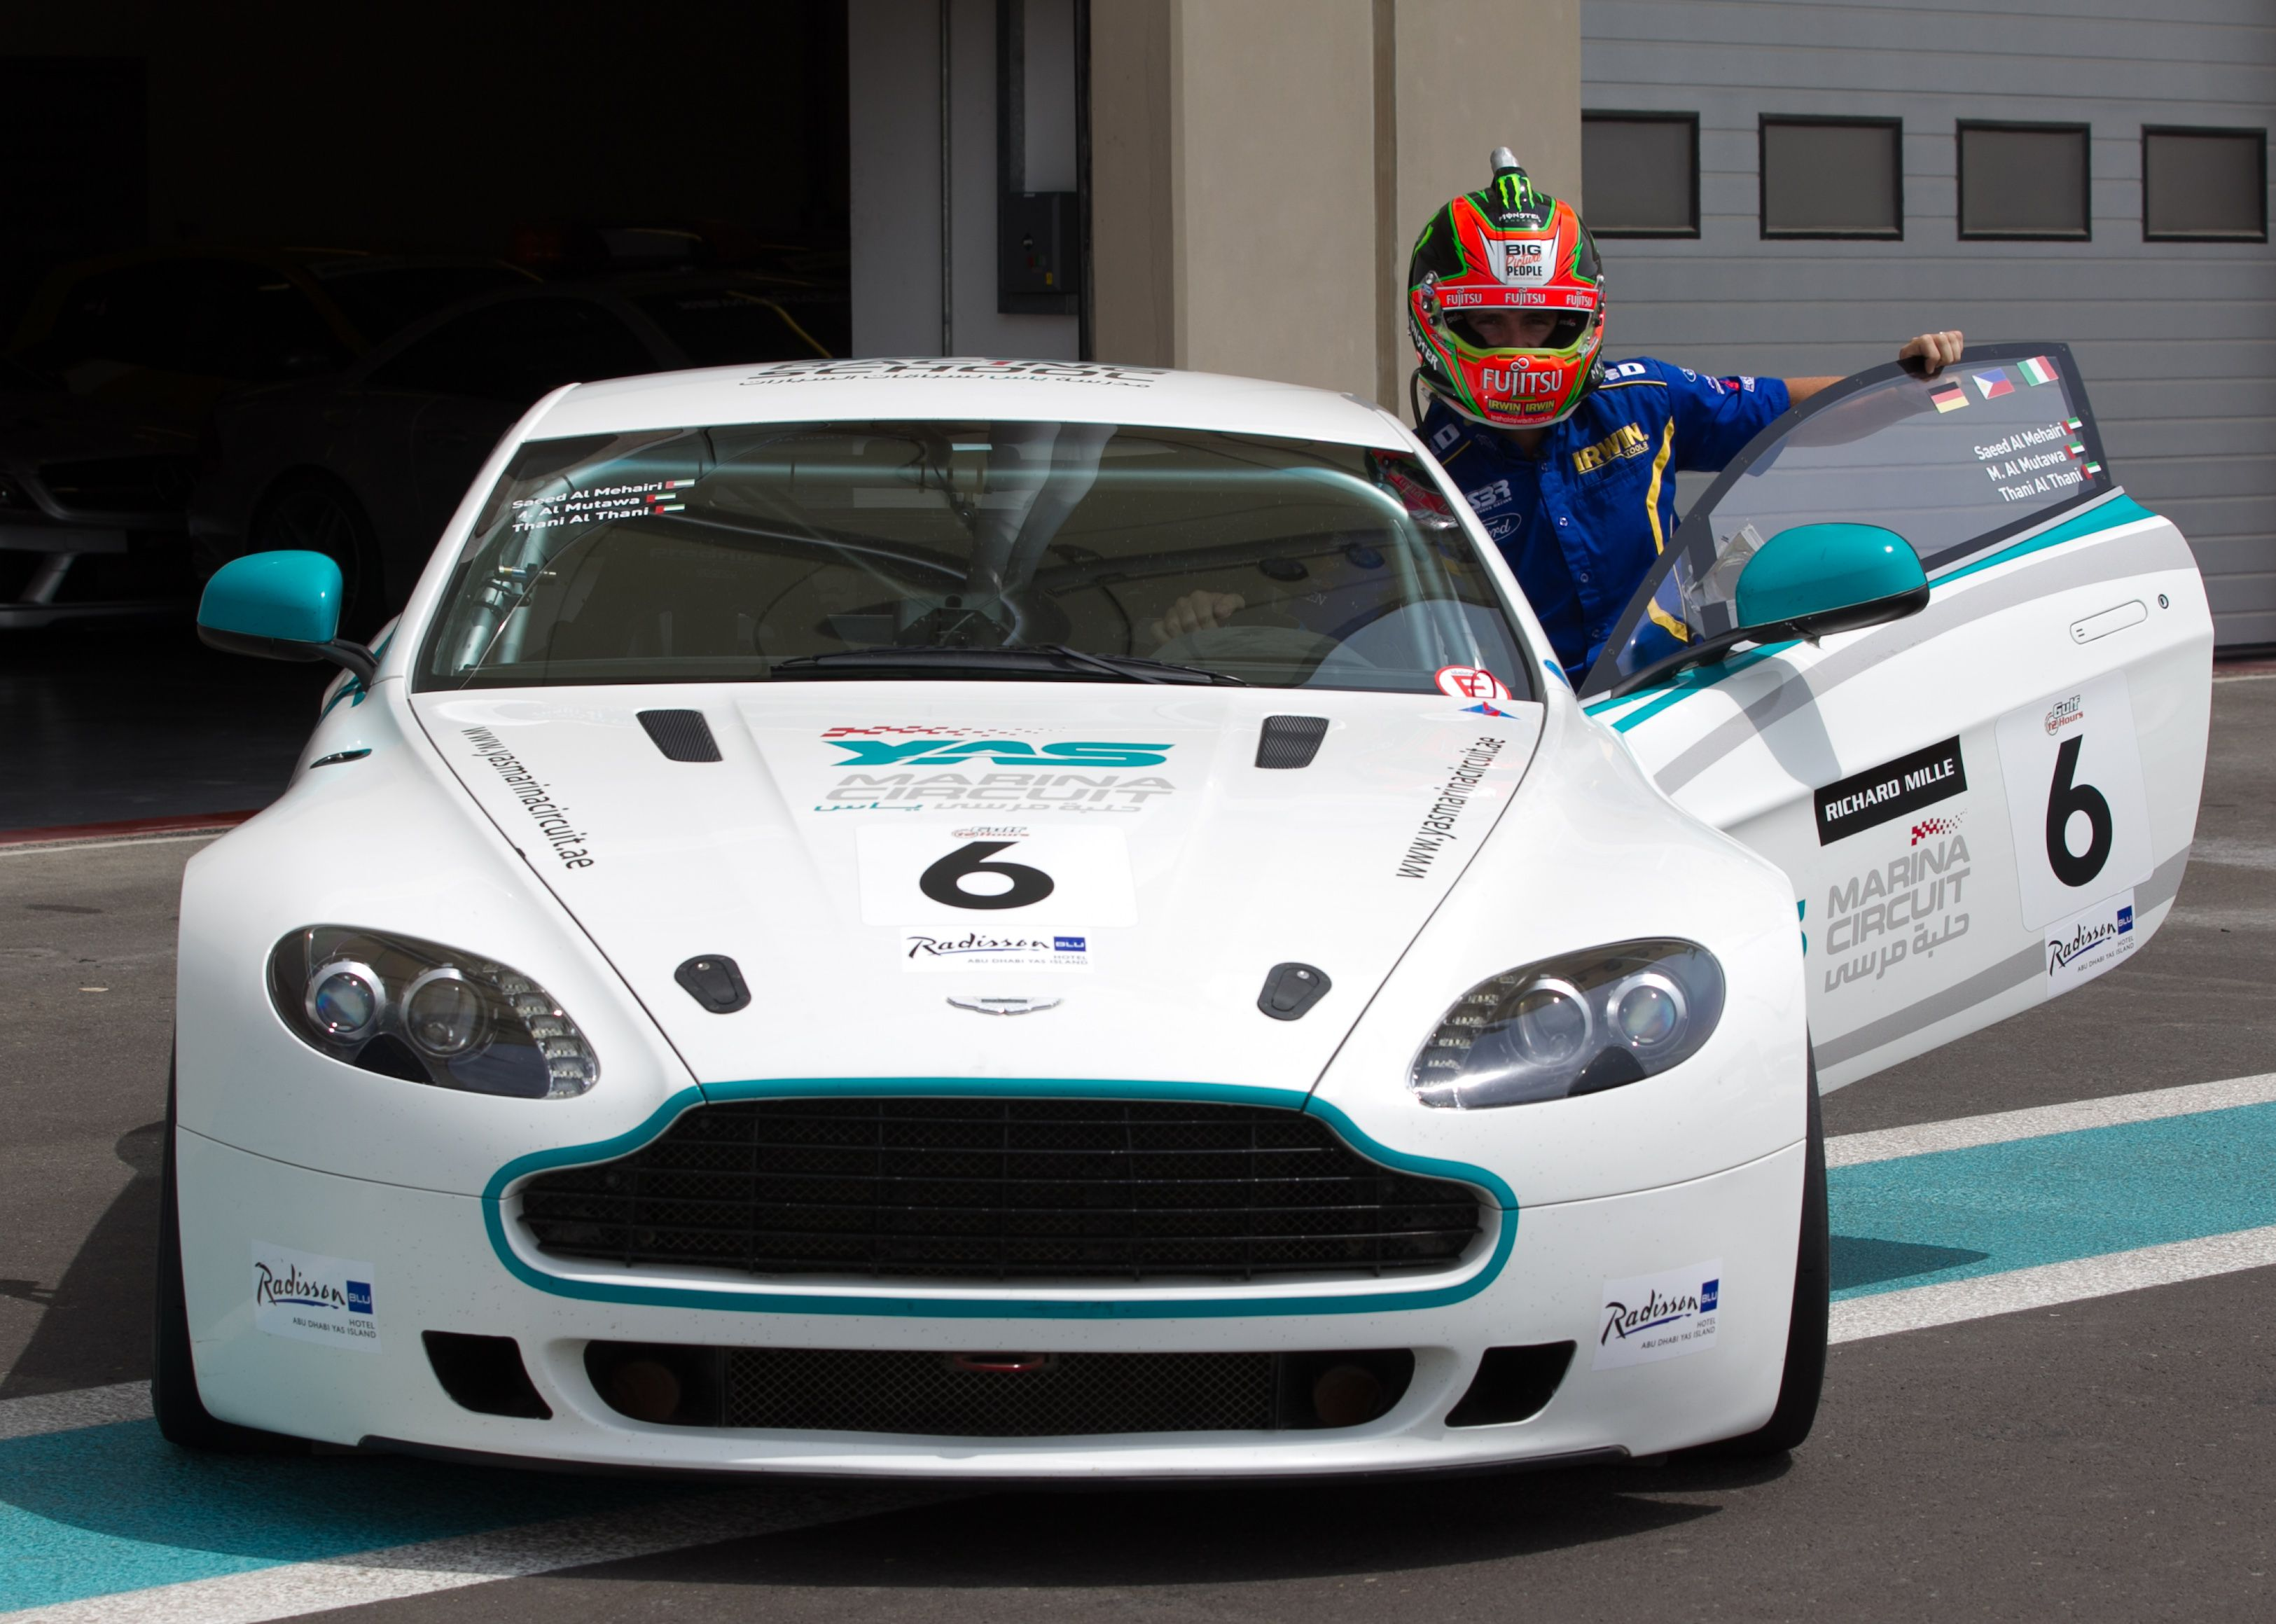 the aston martin gt4 customised for circuit racing. drive this on